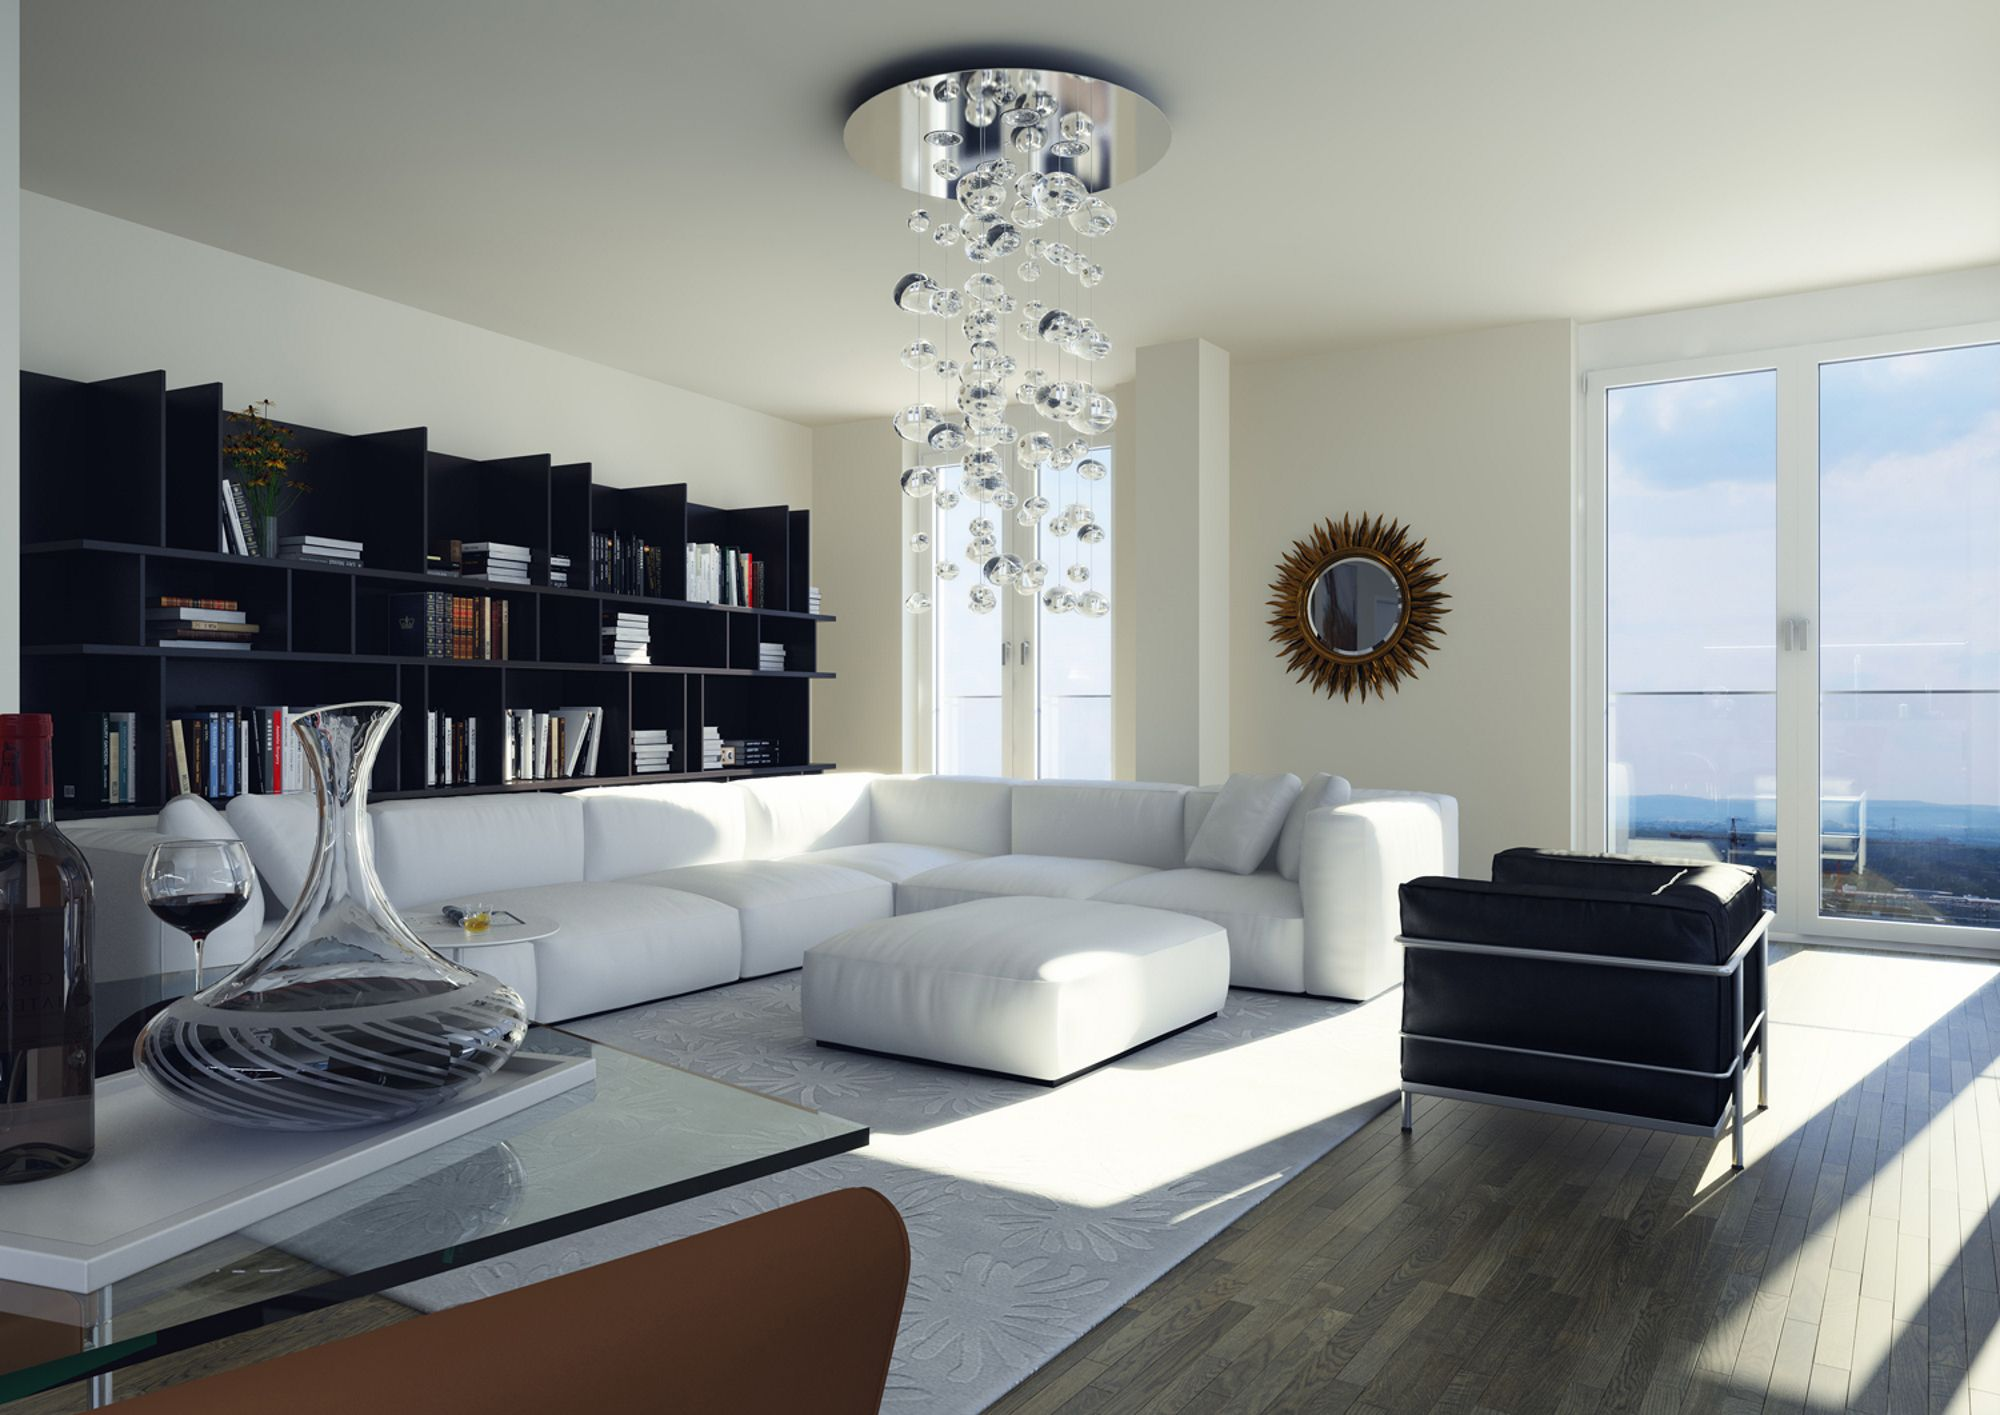 Floortoceiling windows throughout ensure that all rooms